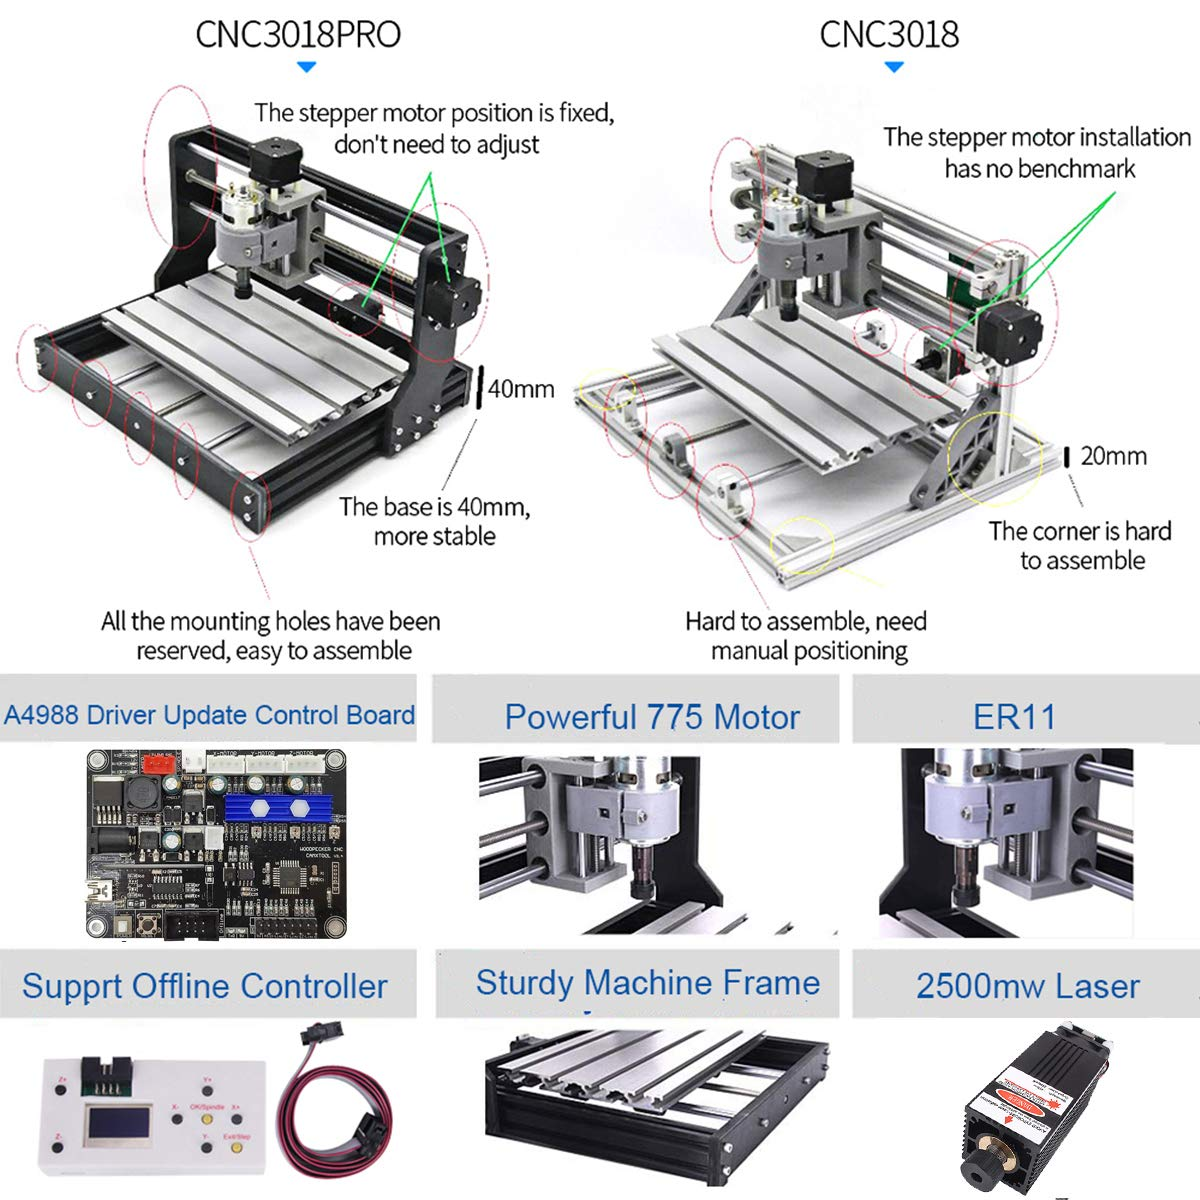 2500mw Laser Engraver CNC 3018 Pro Engraving Machine for Wood Plastic Acrylic PVC Upgraded Version GRBL Control 3 Axis Mini DIY CNC Router Kit with Offline Controller Working Area 300x180x45mm